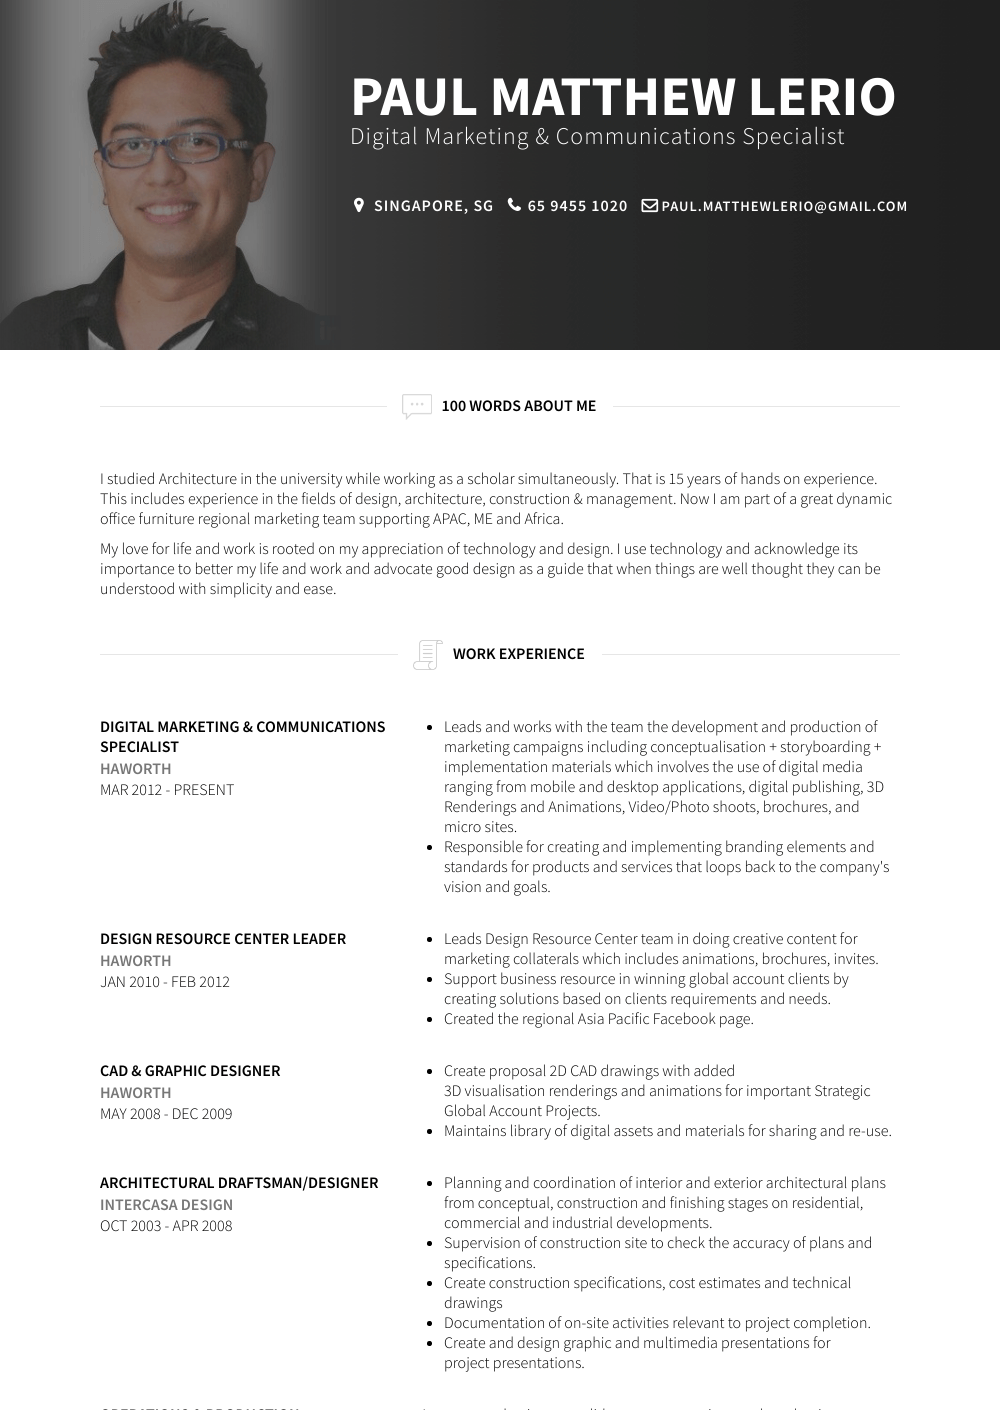 Communications Specialist - Resume Samples & Templates | VisualCV